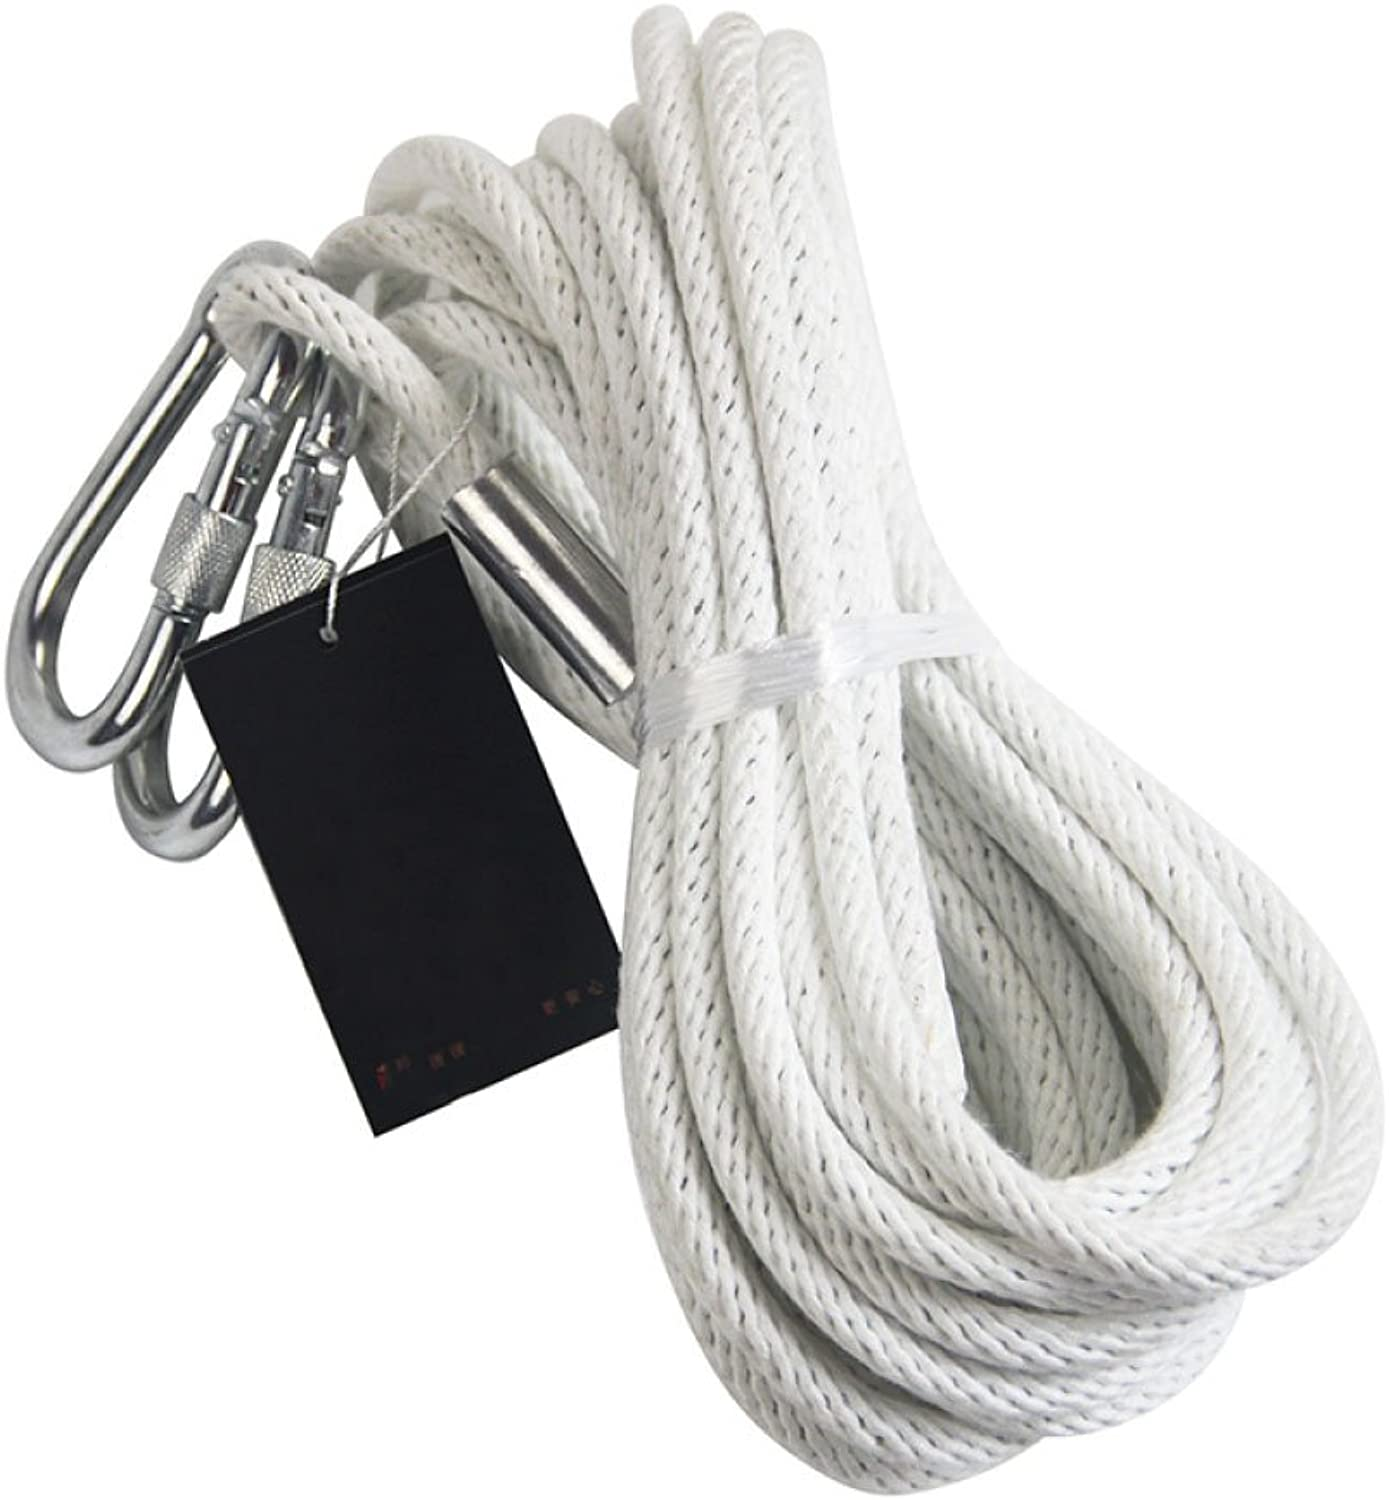 LDFN Rock Climbing Rope Fireproof Rescue Rope Escape Emergency Rope Home Wire Core Rope,White-50m8mm